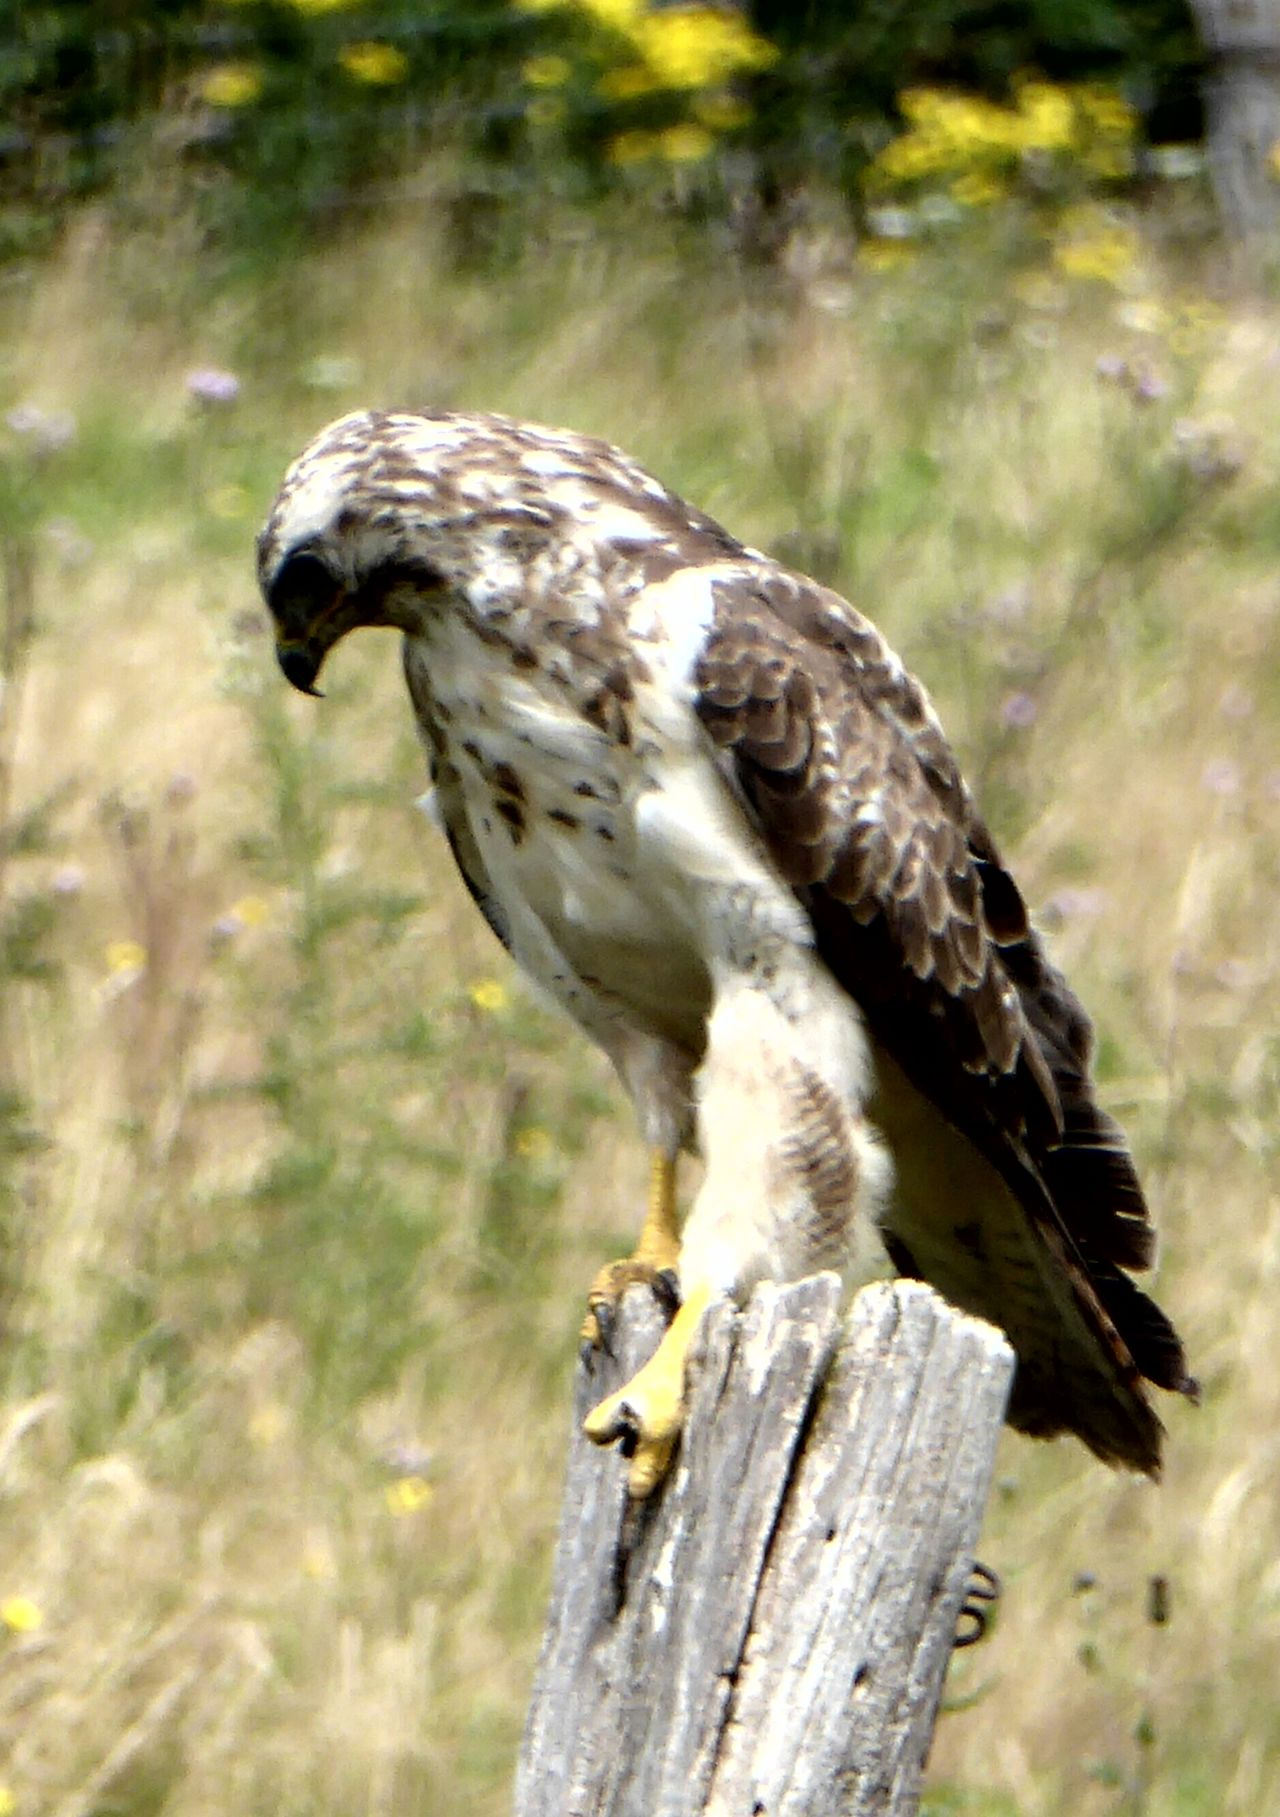 Animals In WildlifeMäusebussard Common Buzzard Animals In The Wild Birdwatching Birds_collection Birds Of EyeEm  Magicmoment Nature Photography Beautiful Nature Naturelovers Animals Posing On The Way Birds In The Wild Adventure Club Showcase July